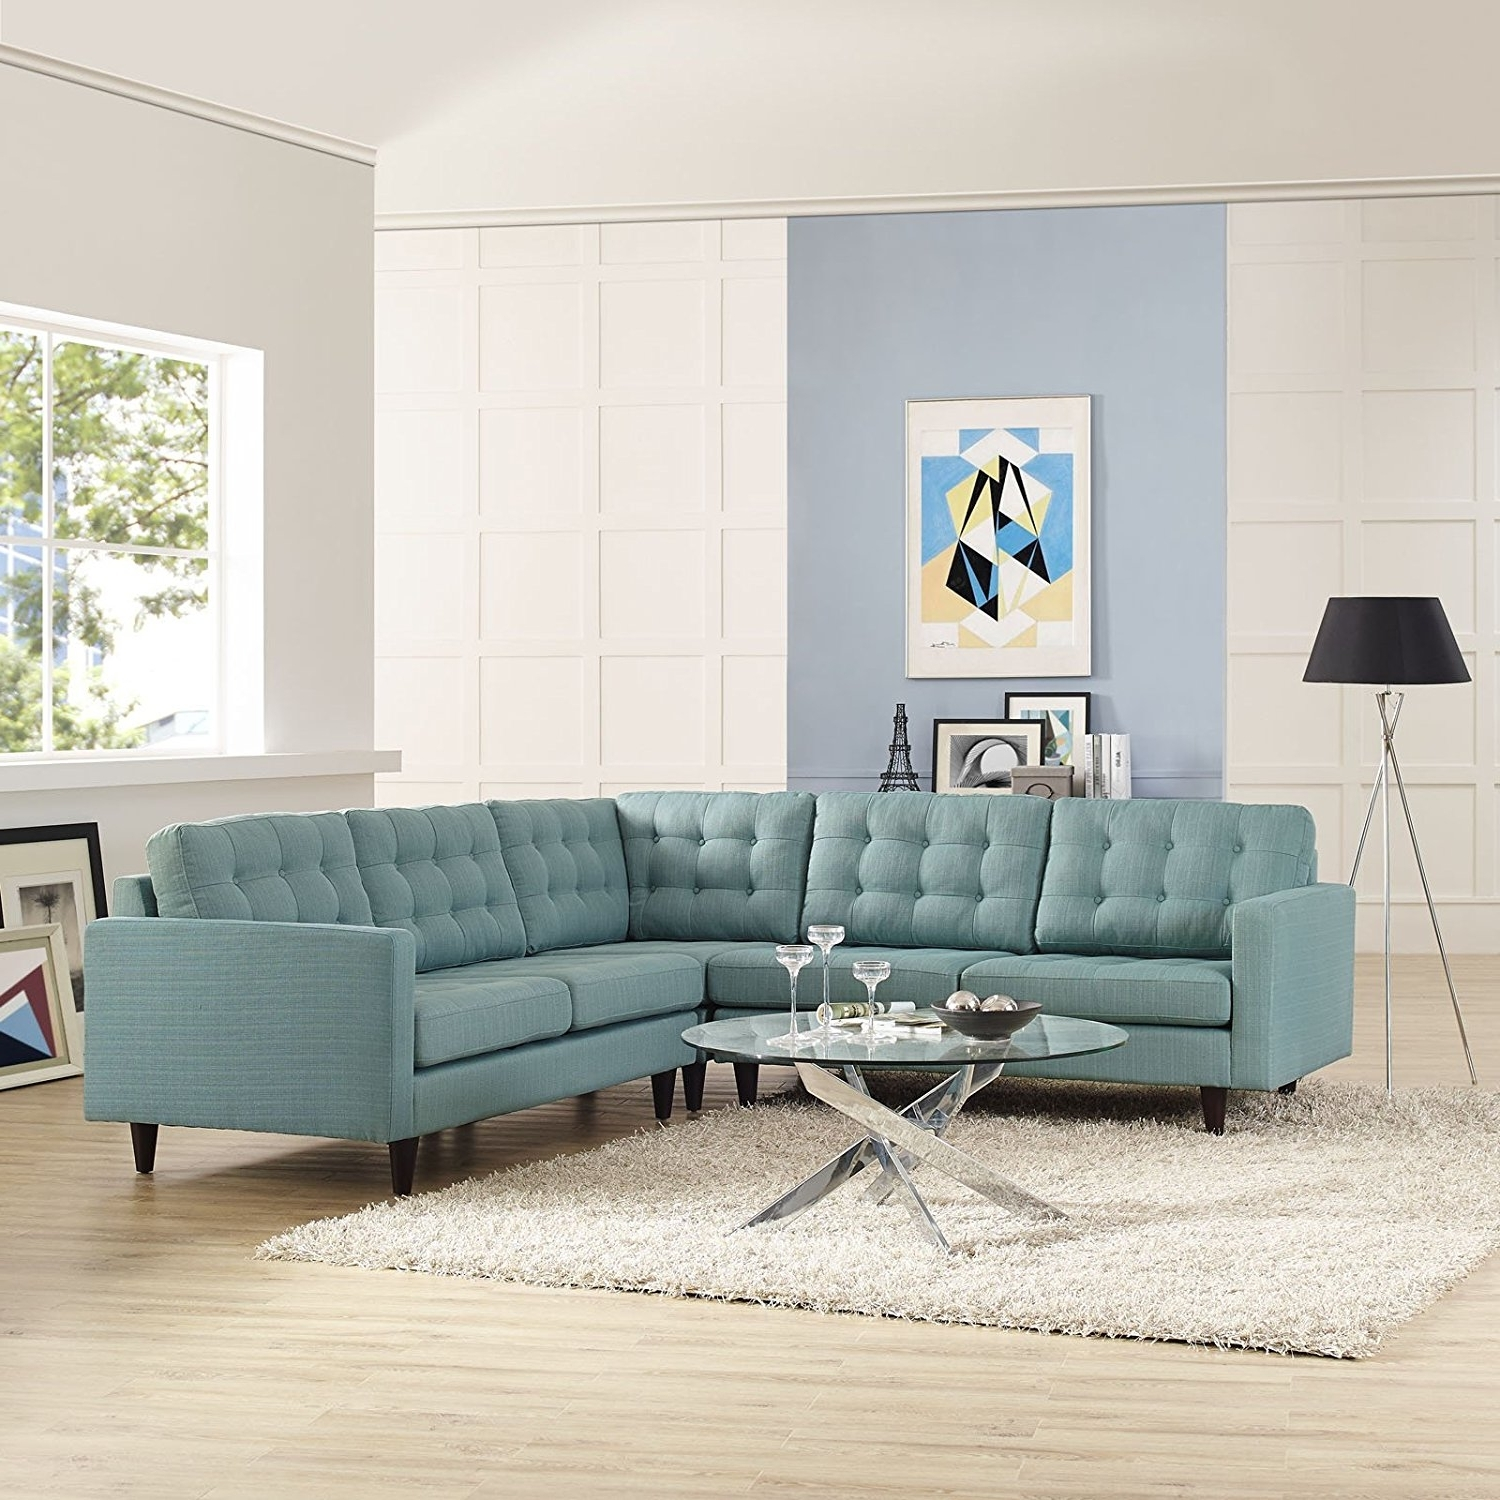 Modway Furniture Empress Modern Light Blue Fabric Sectional With Regard To Favorite Blue Sectional Sofas (View 18 of 20)